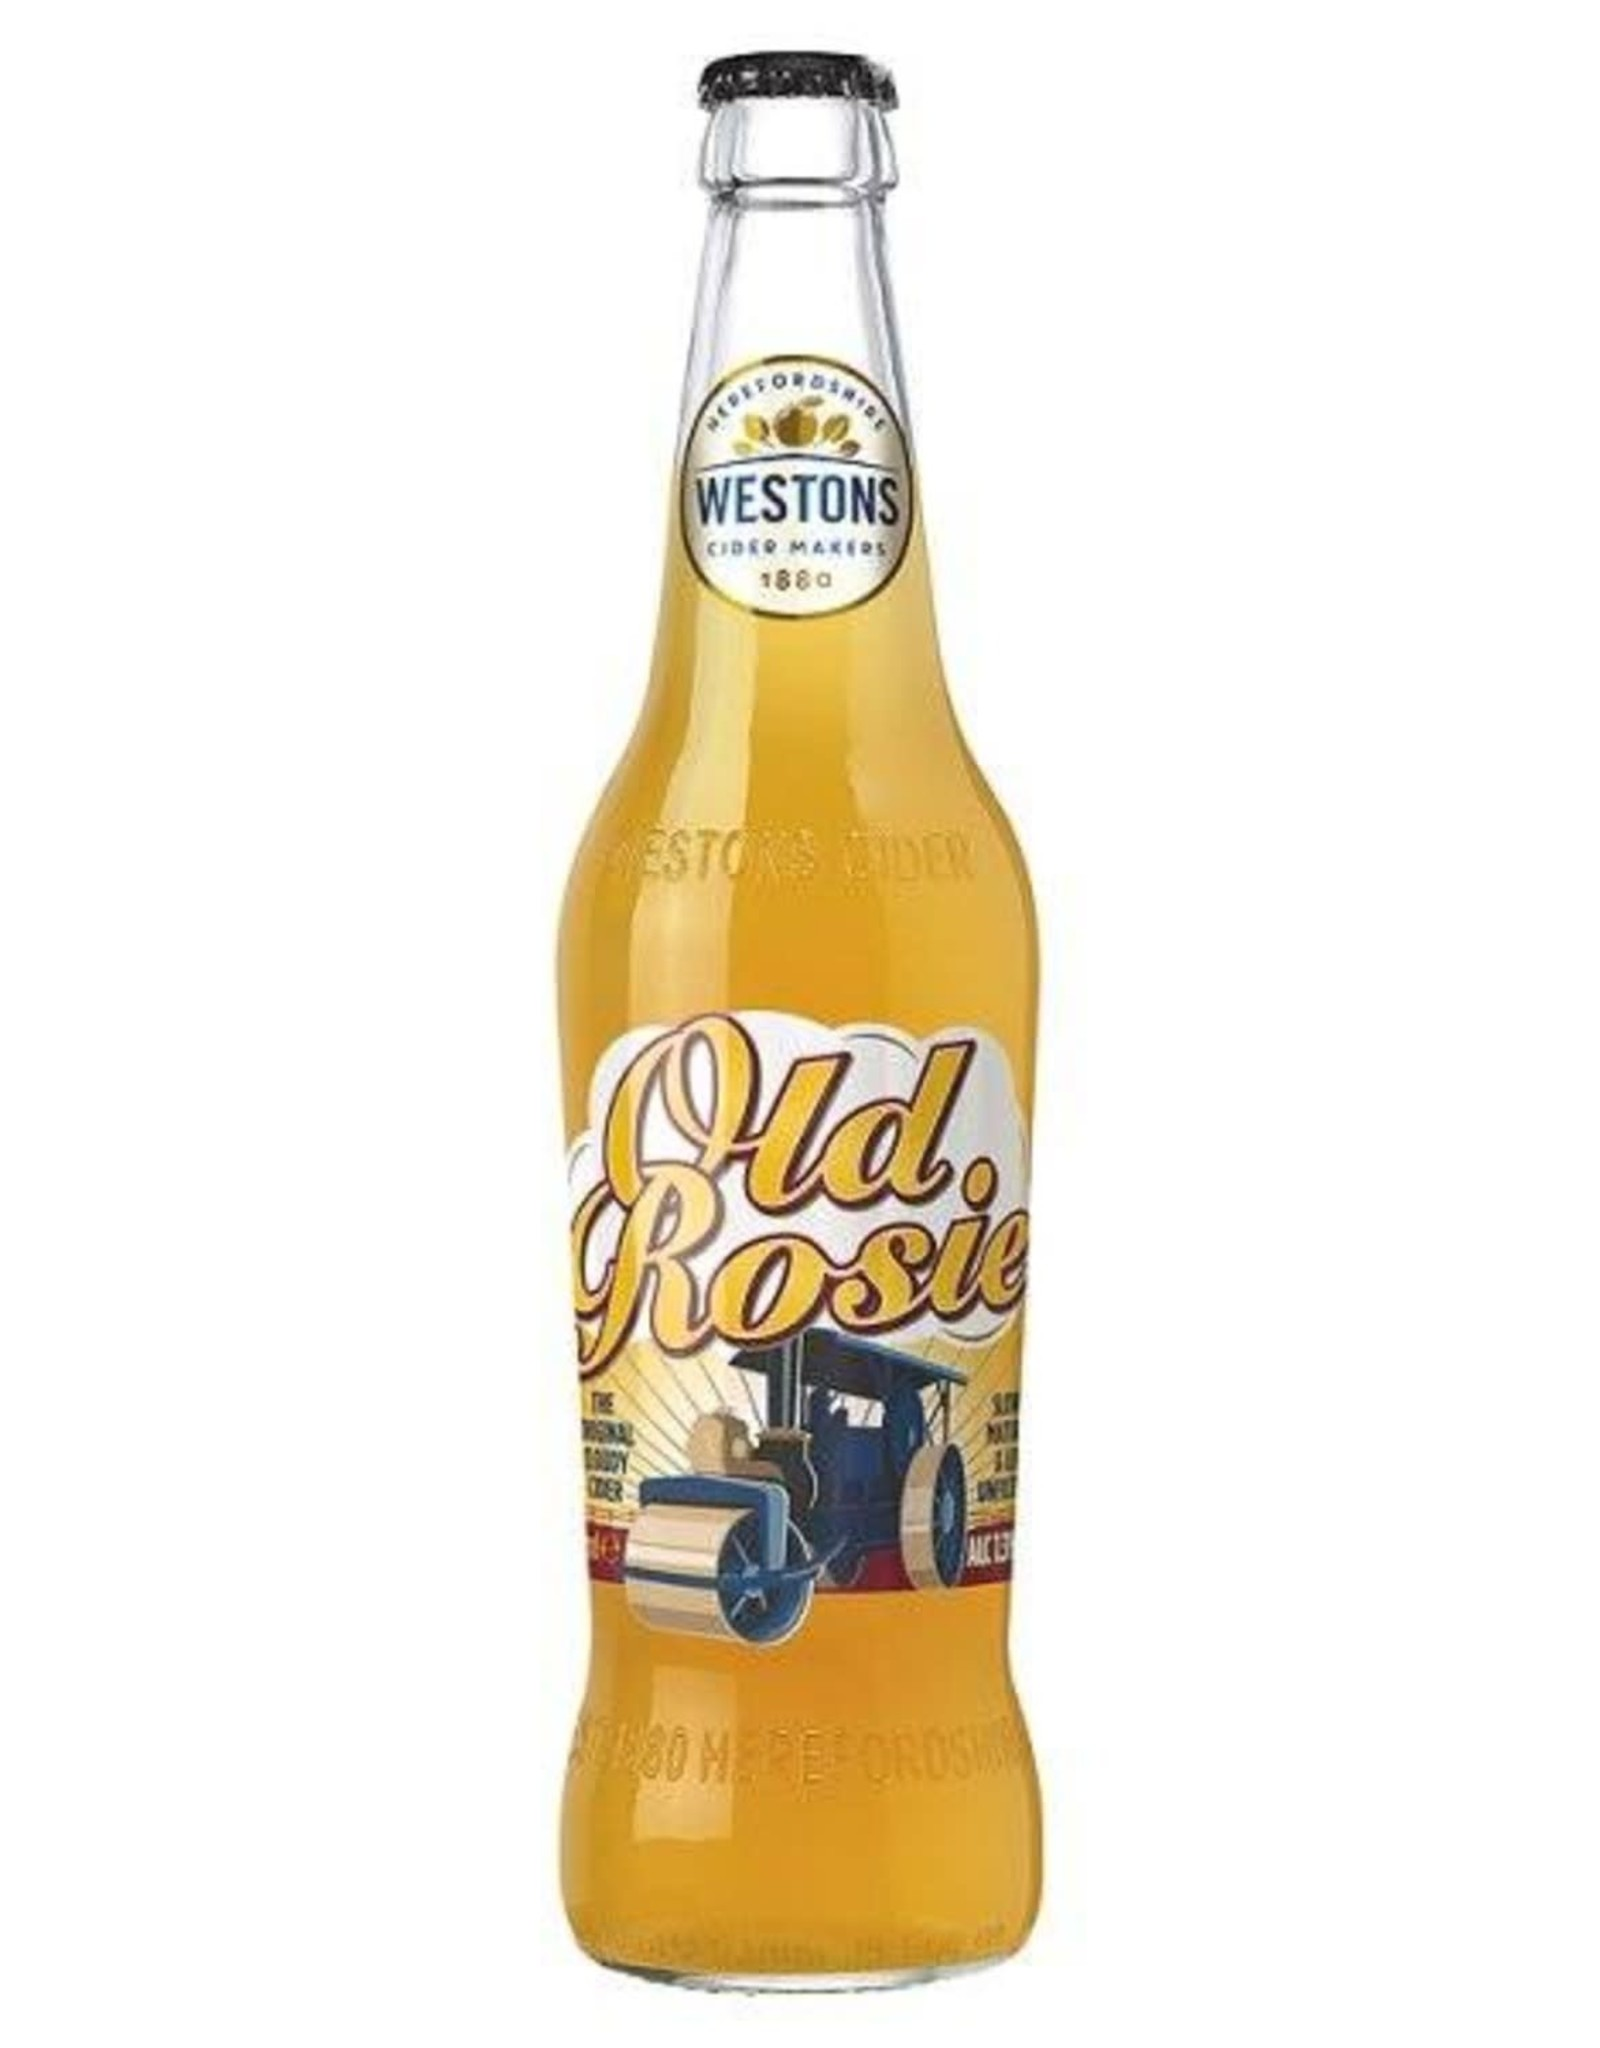 Westons Westons Old Rosie Cloudy Cider 50 cl